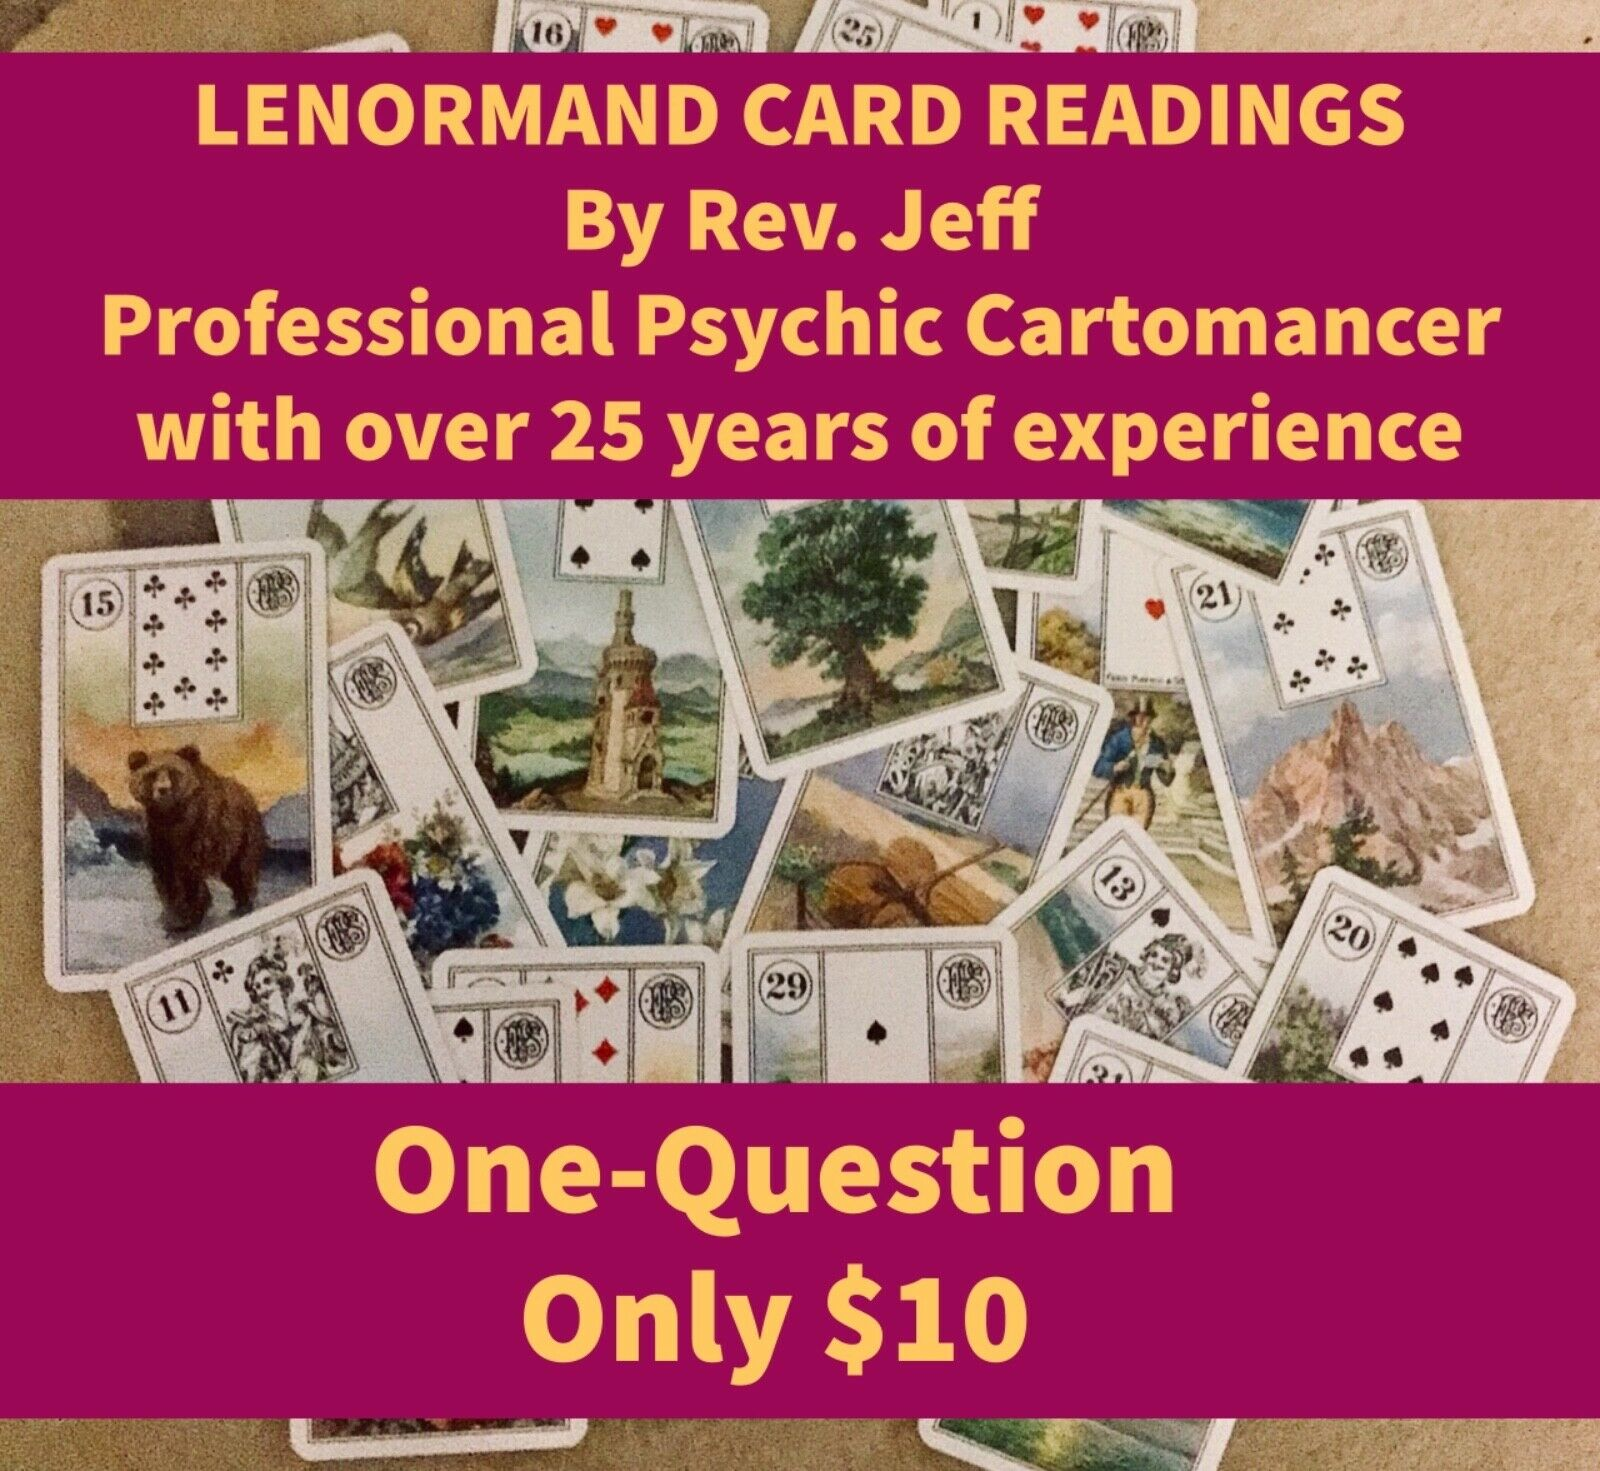 One-Question Lenormand Card Reading By Professional Psychic Cartomancer - $10.00